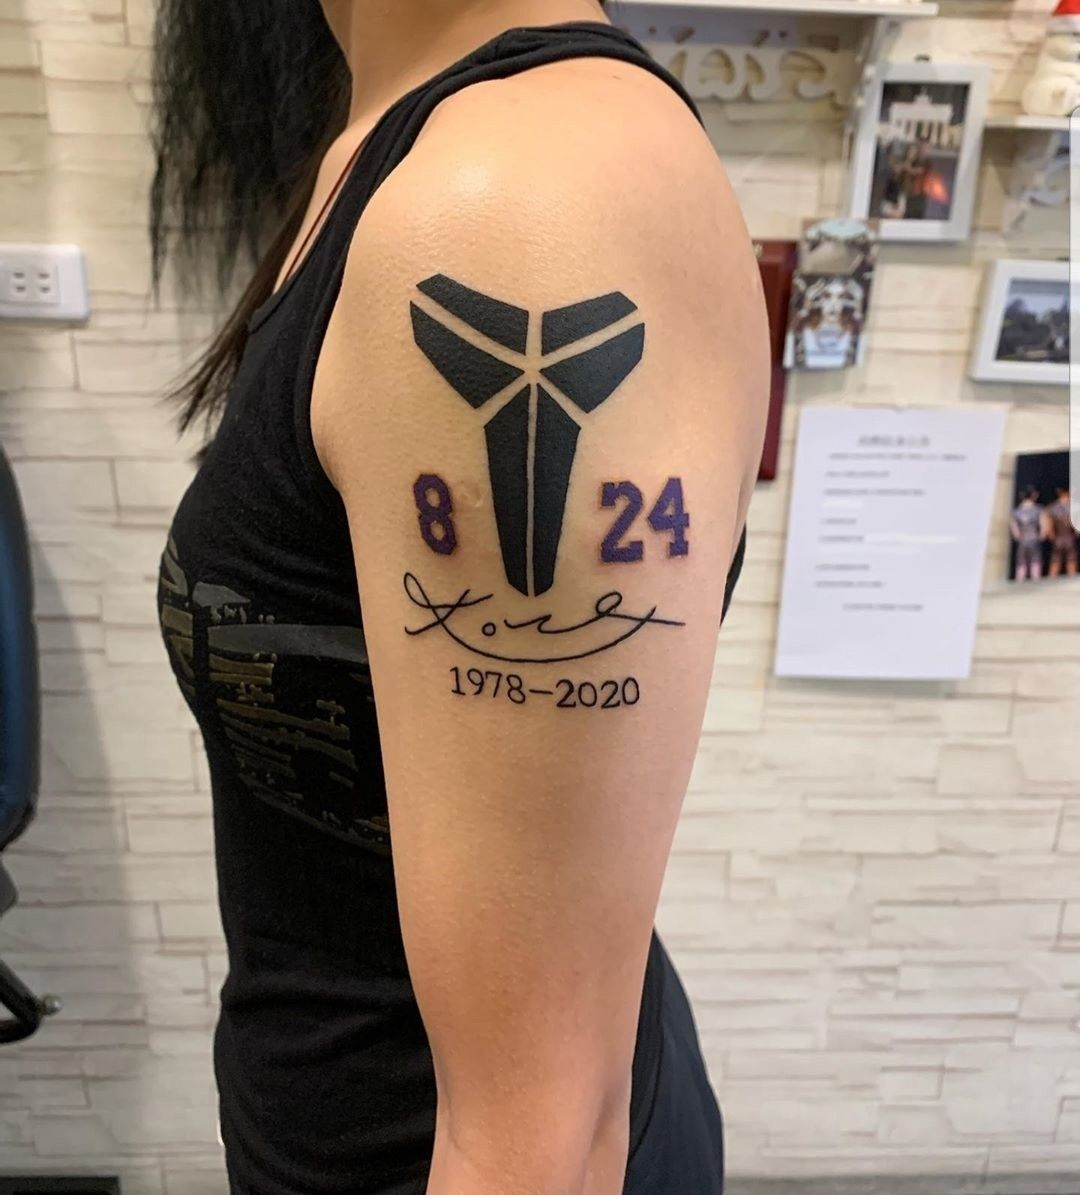 Pin by Pulido on Tattoos in 2020 Kobe bryant